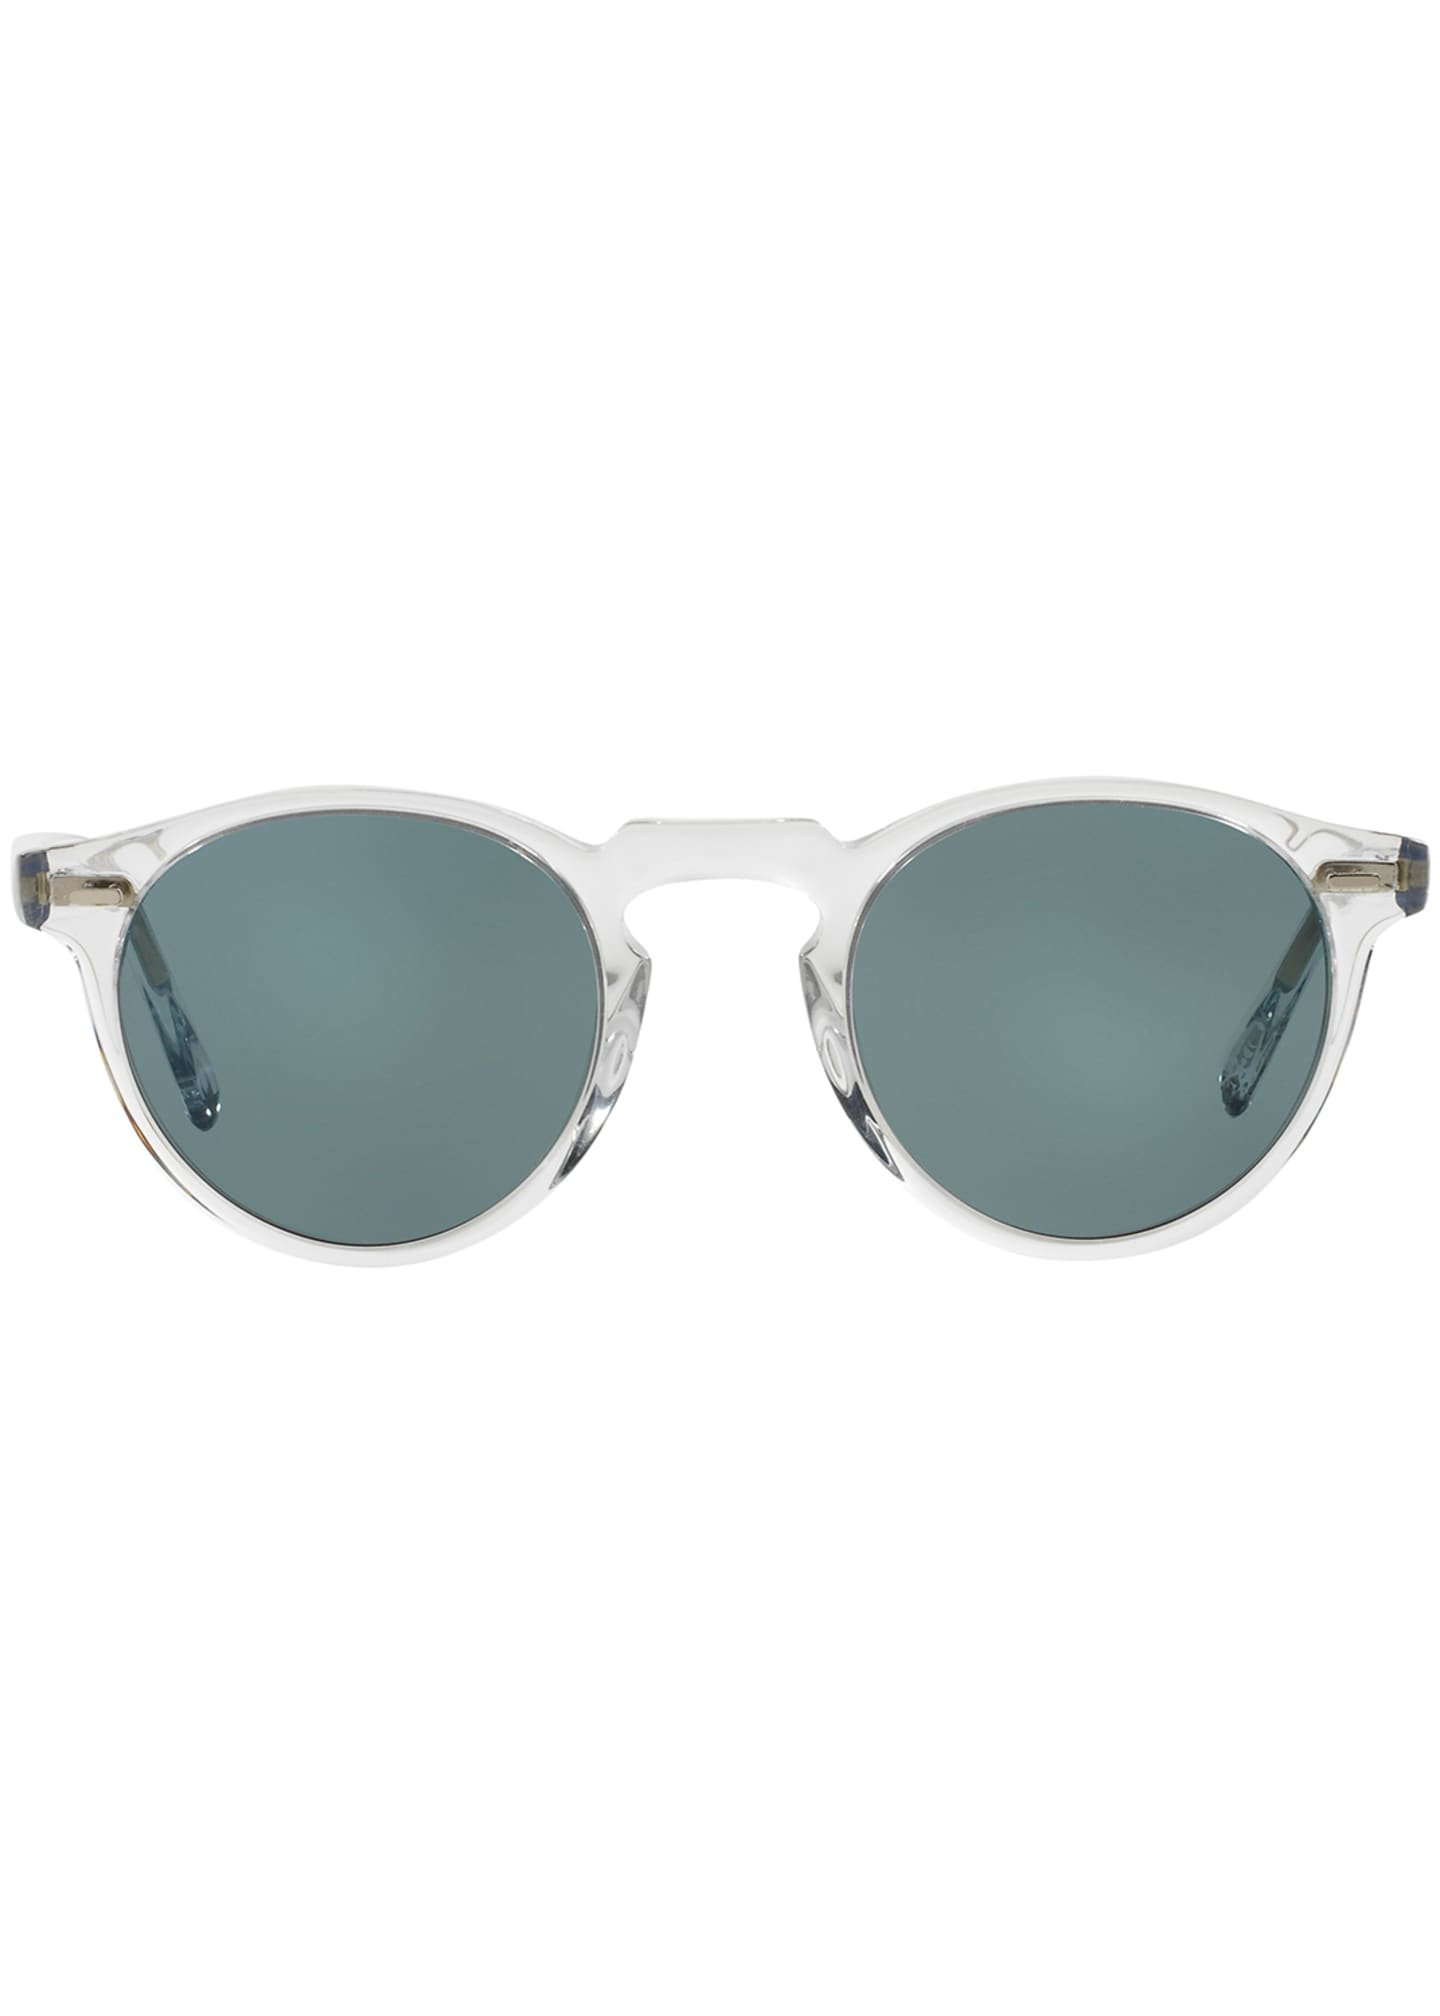 Image 2 of 2: Gregory Peck Round Acetate Sunglasses